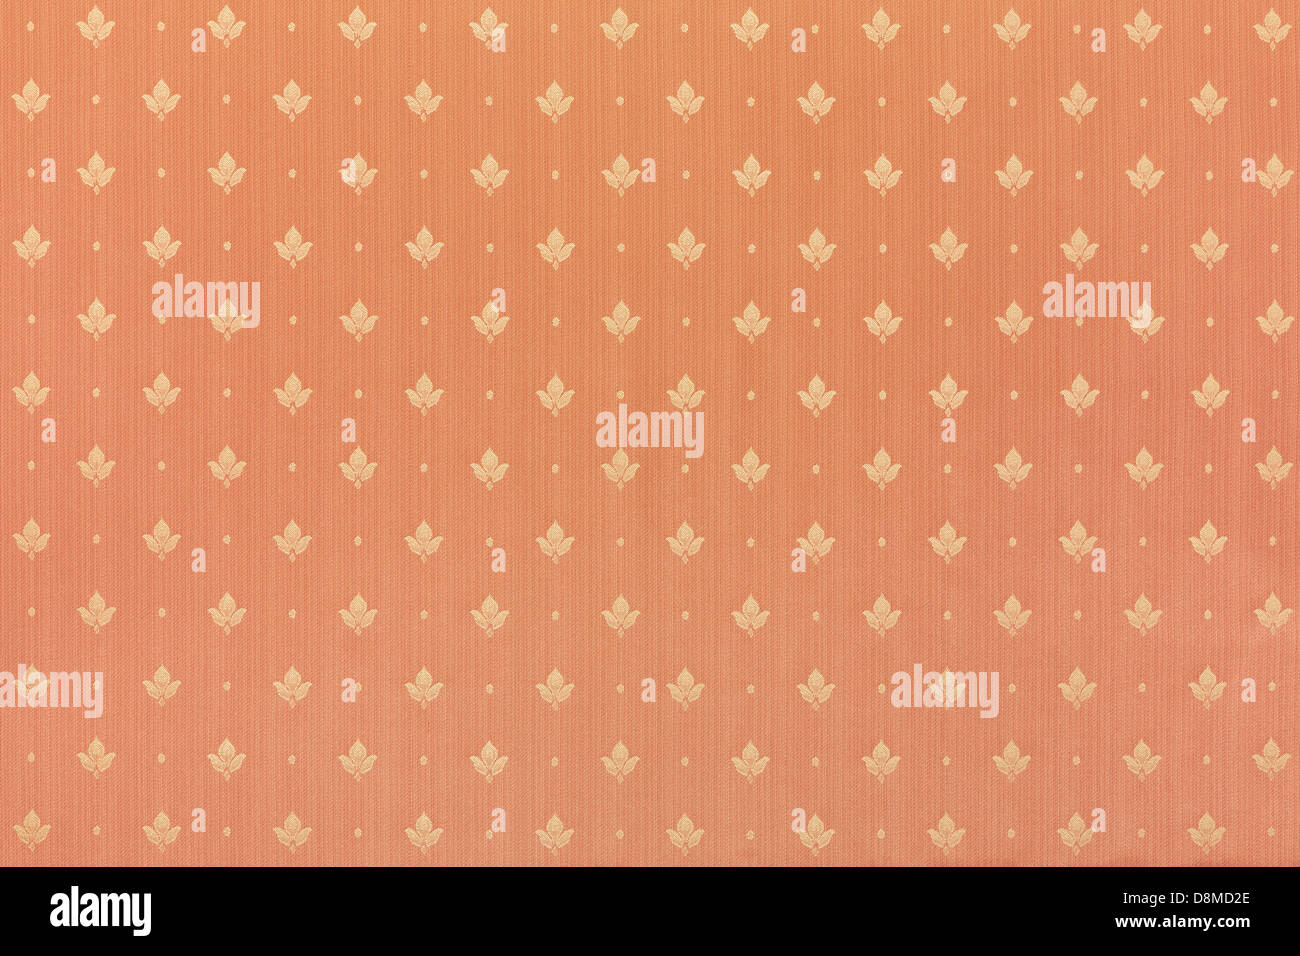 Floral abstract brown wallpaper texture background - Stock Image